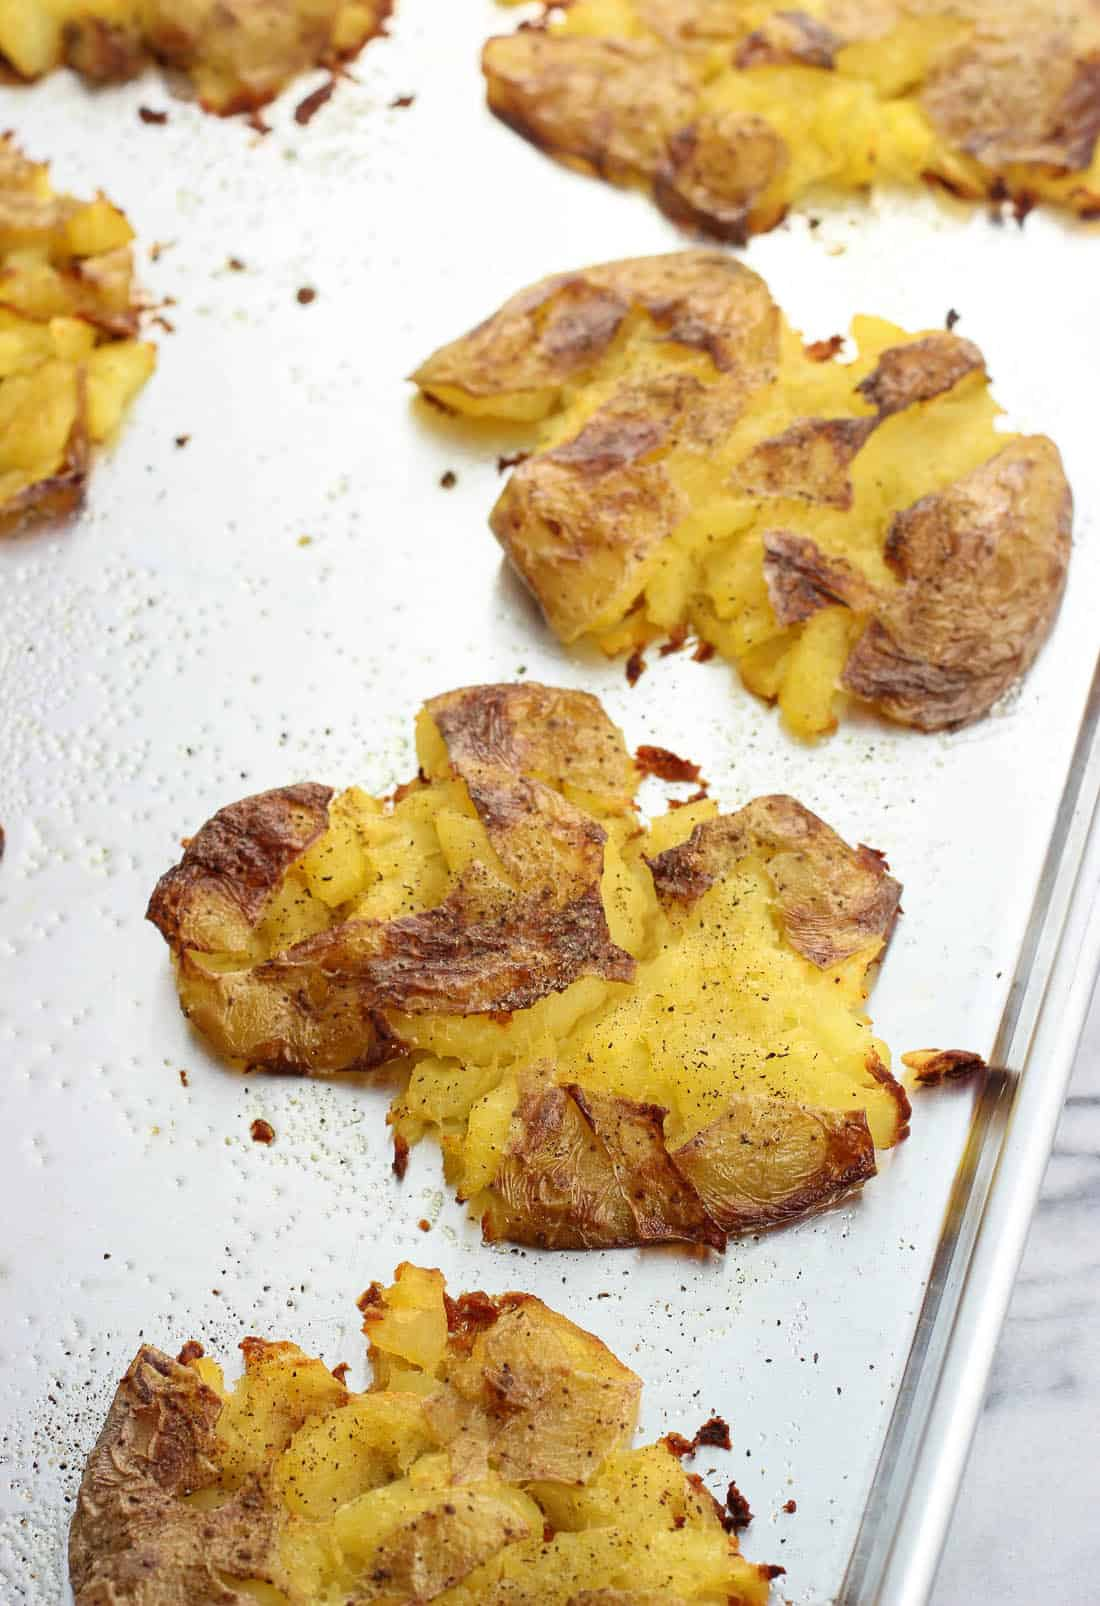 Crisped smashed potatoes on a greased metal baking sheet